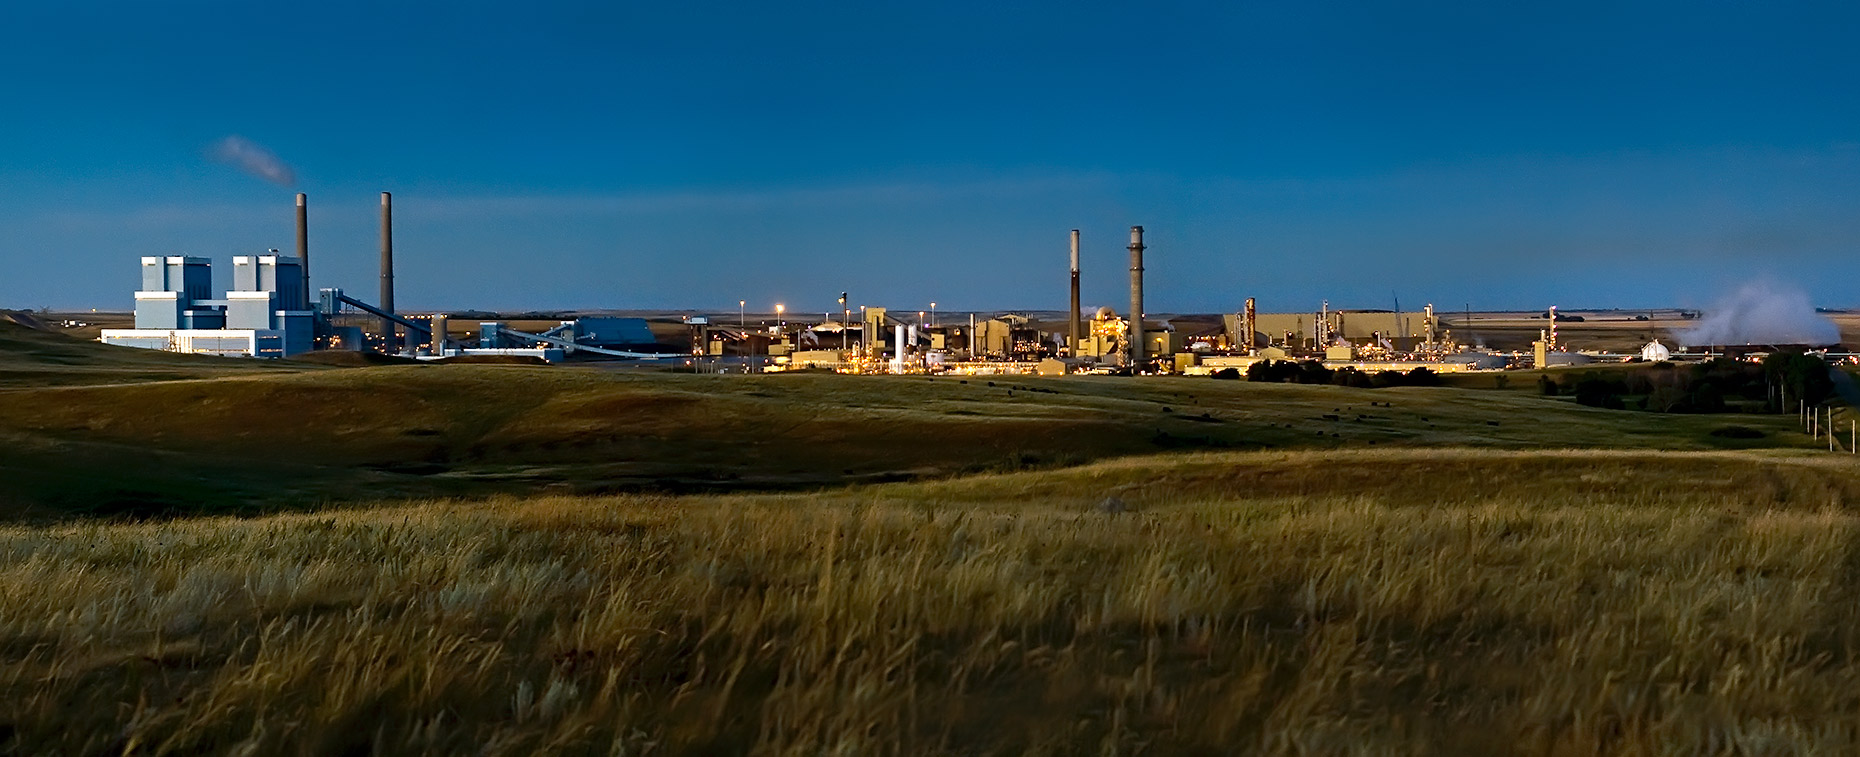 Antelope Valley Power Plant and Great Plains Synfuels Plant.